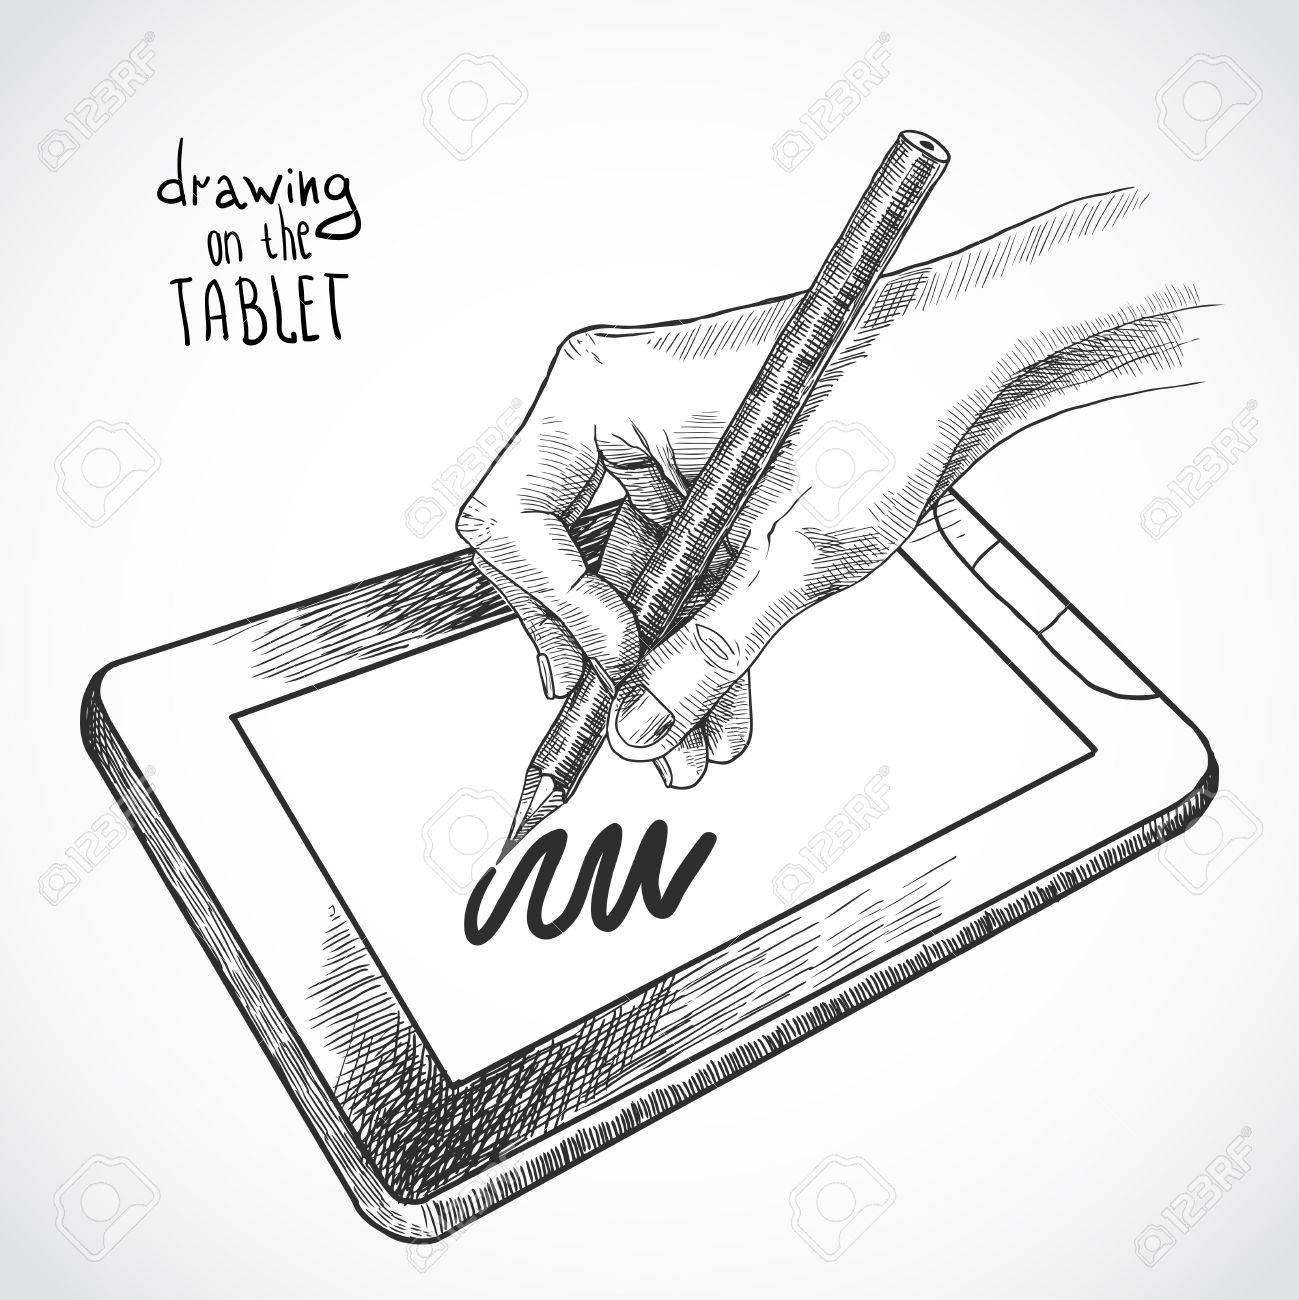 Hand Drawing On The Tablet With Graphite Pencil Sketch Isolated